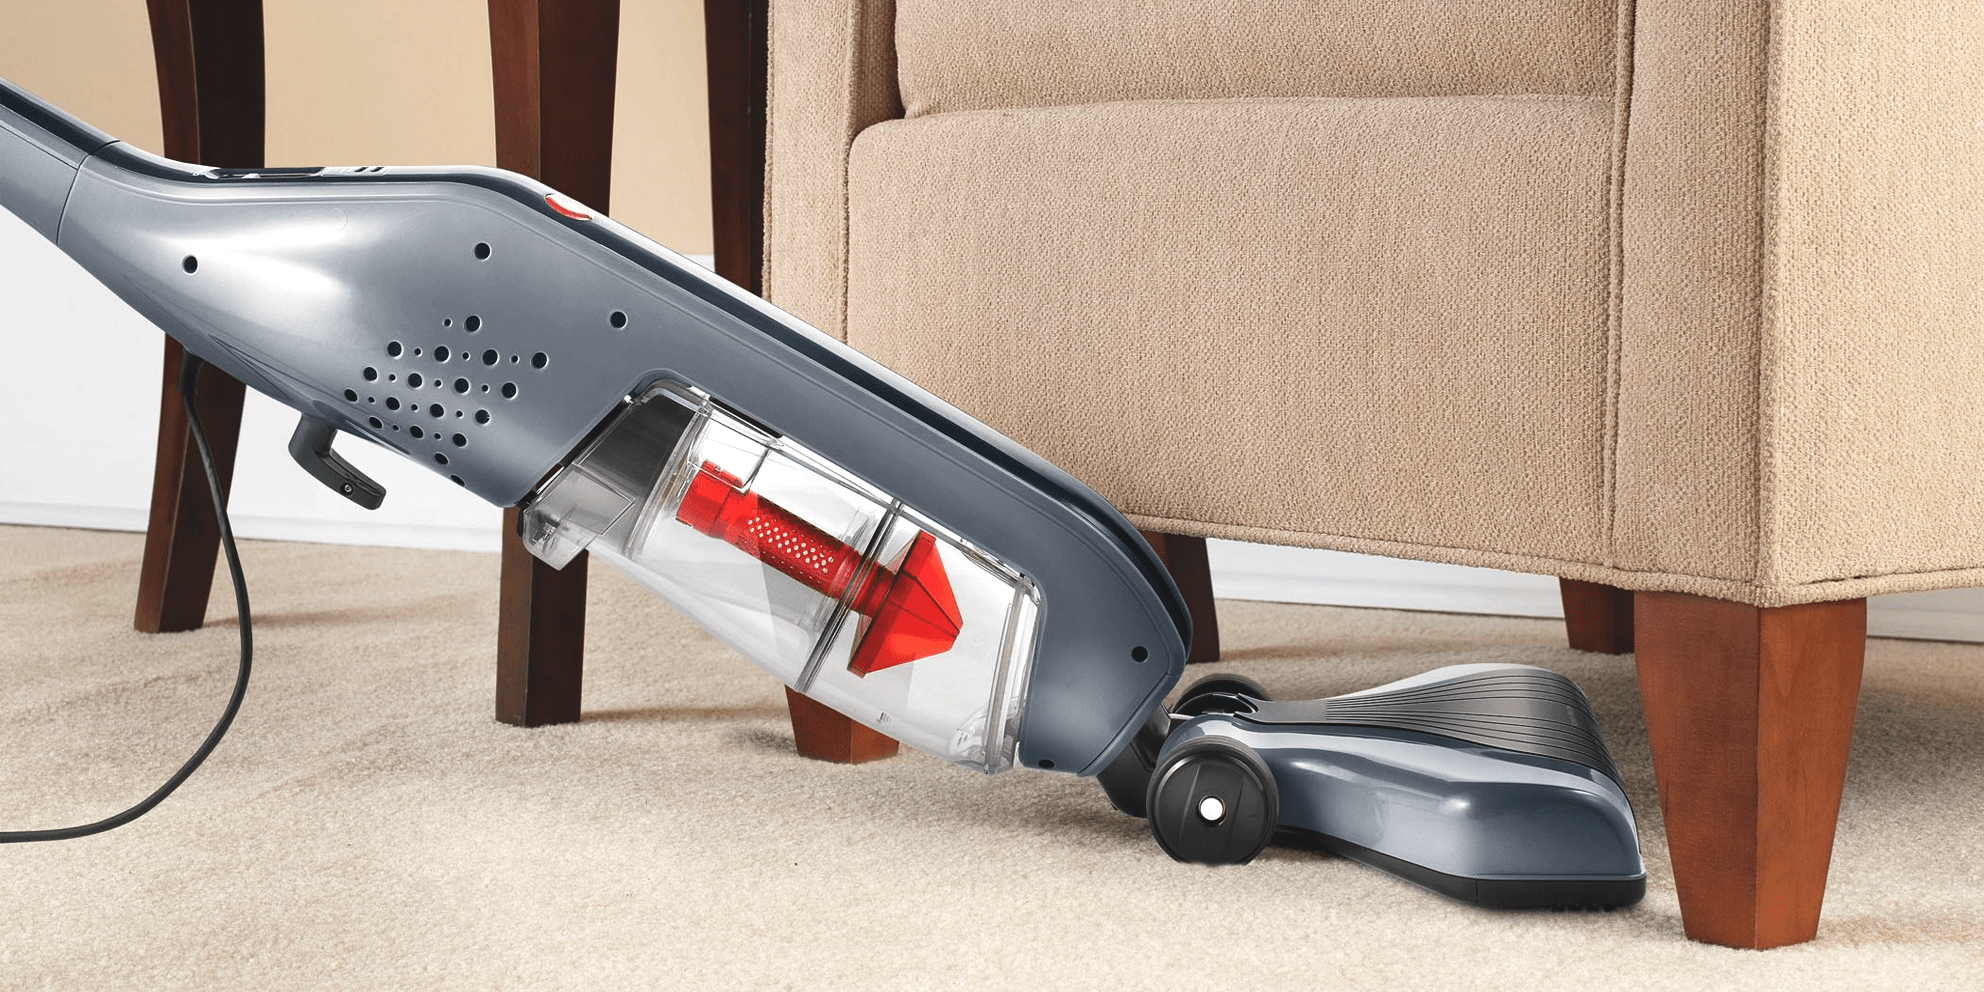 Hoover Corded Stick extreme recline